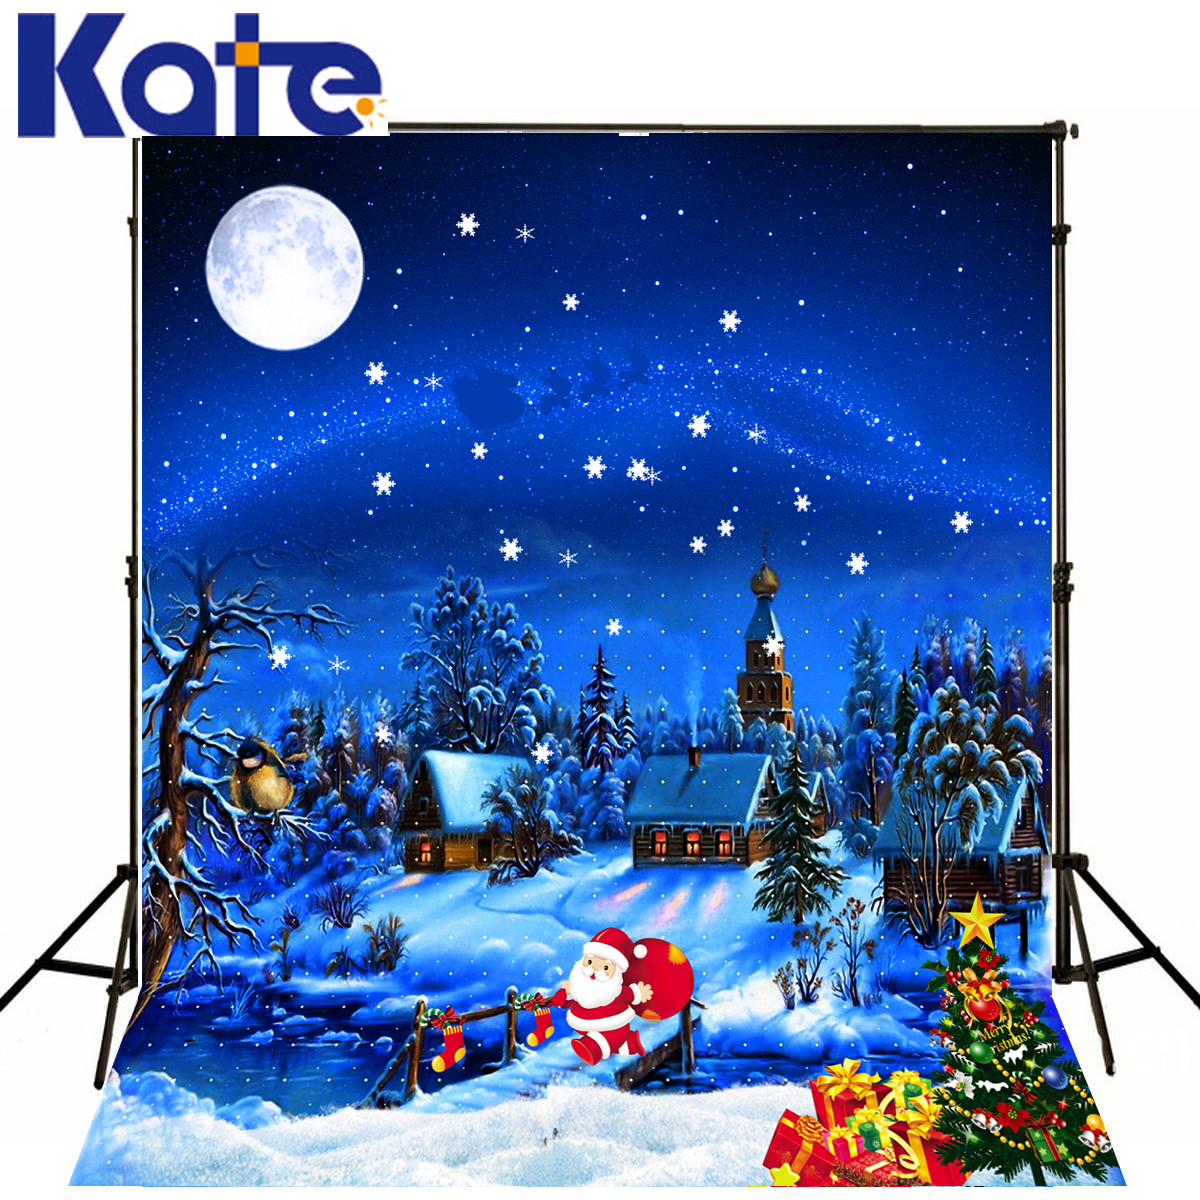 Kate Merry Christmas Backdrop Photography Blue Sky Night Snow Land Background Photo Studio Santa Claus Christmas Tree J01688